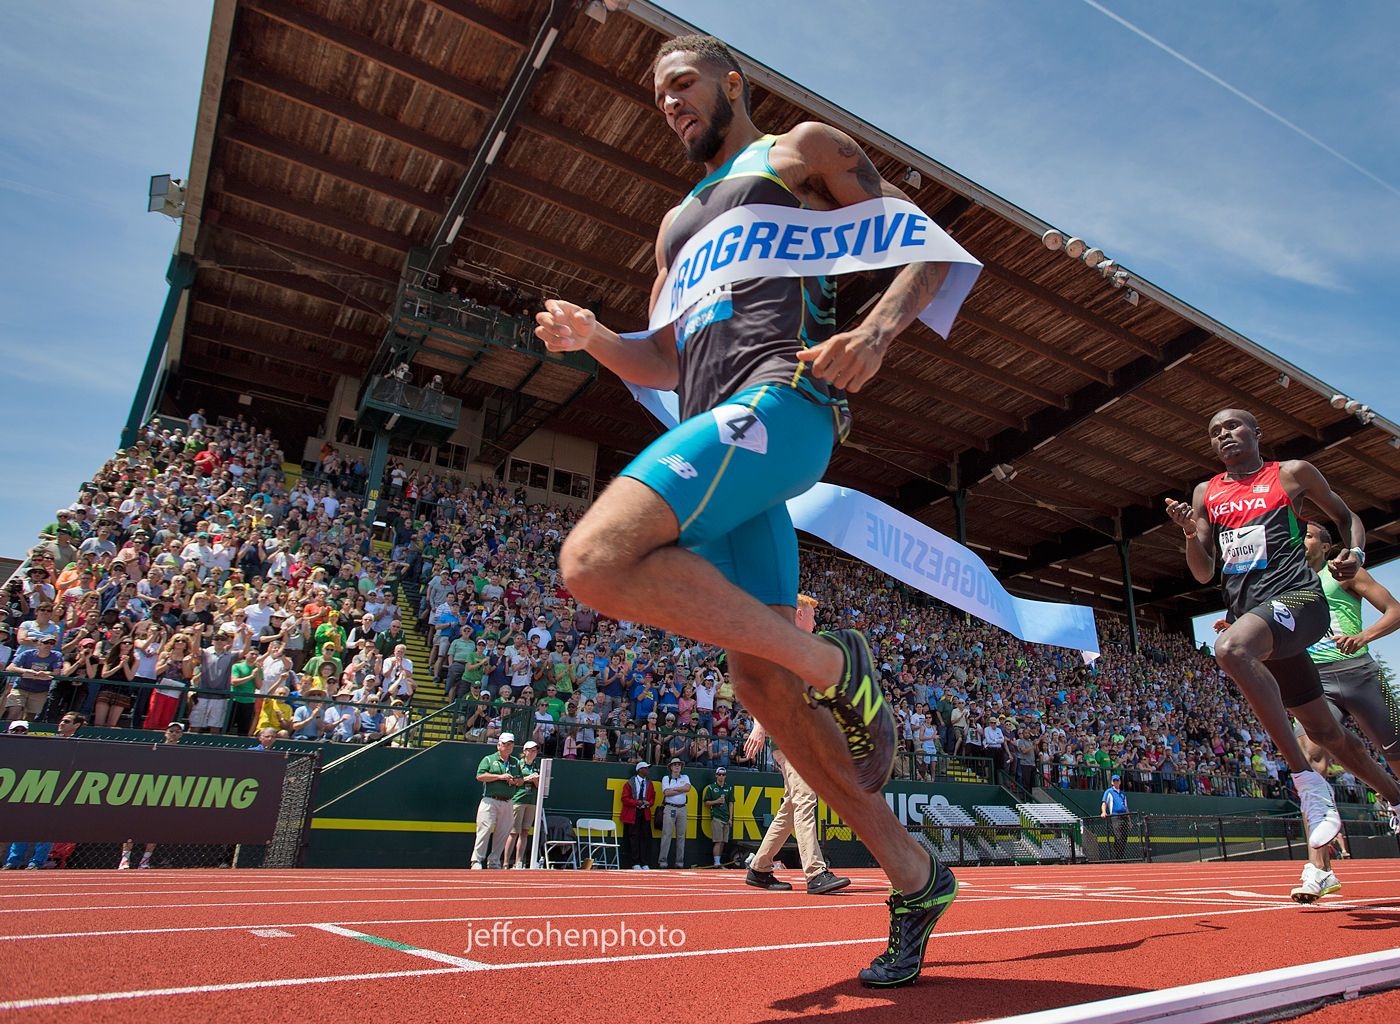 1pre_2016_day_berian_800m_jeff_cohen_photo_6747web.jpg